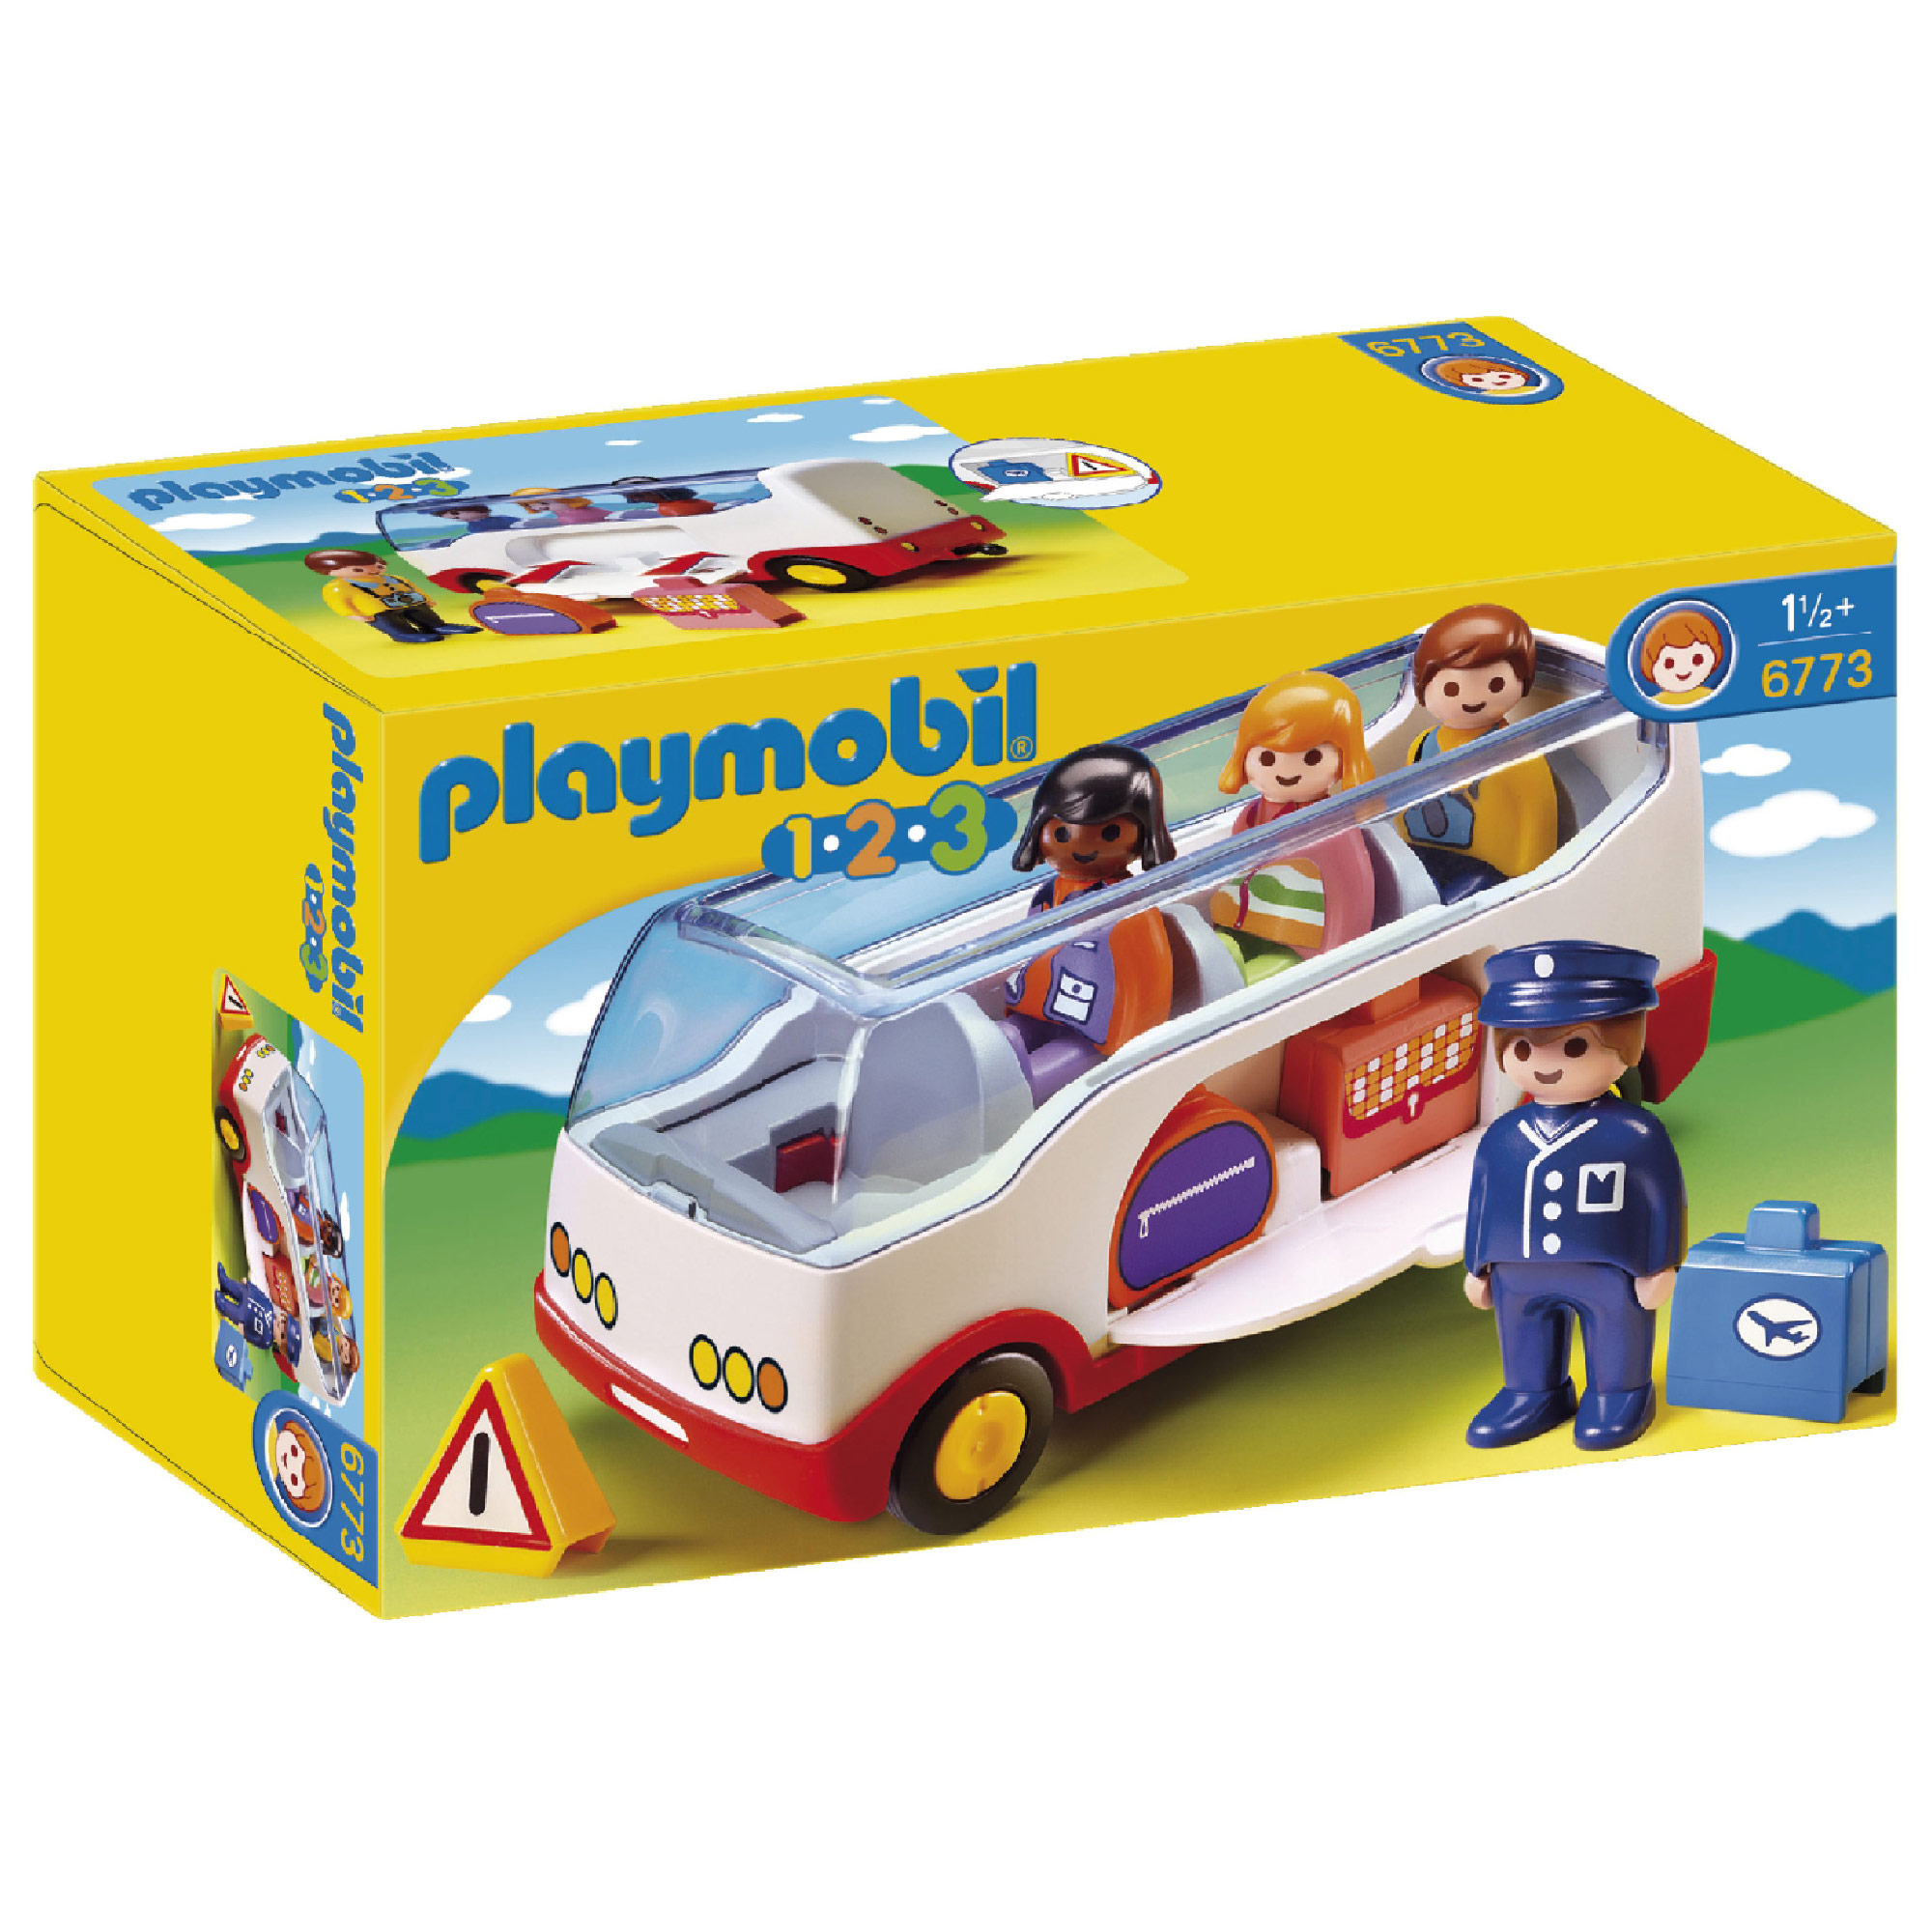 Picture of Playmobil 123 Airport Shuttle Bus 6773